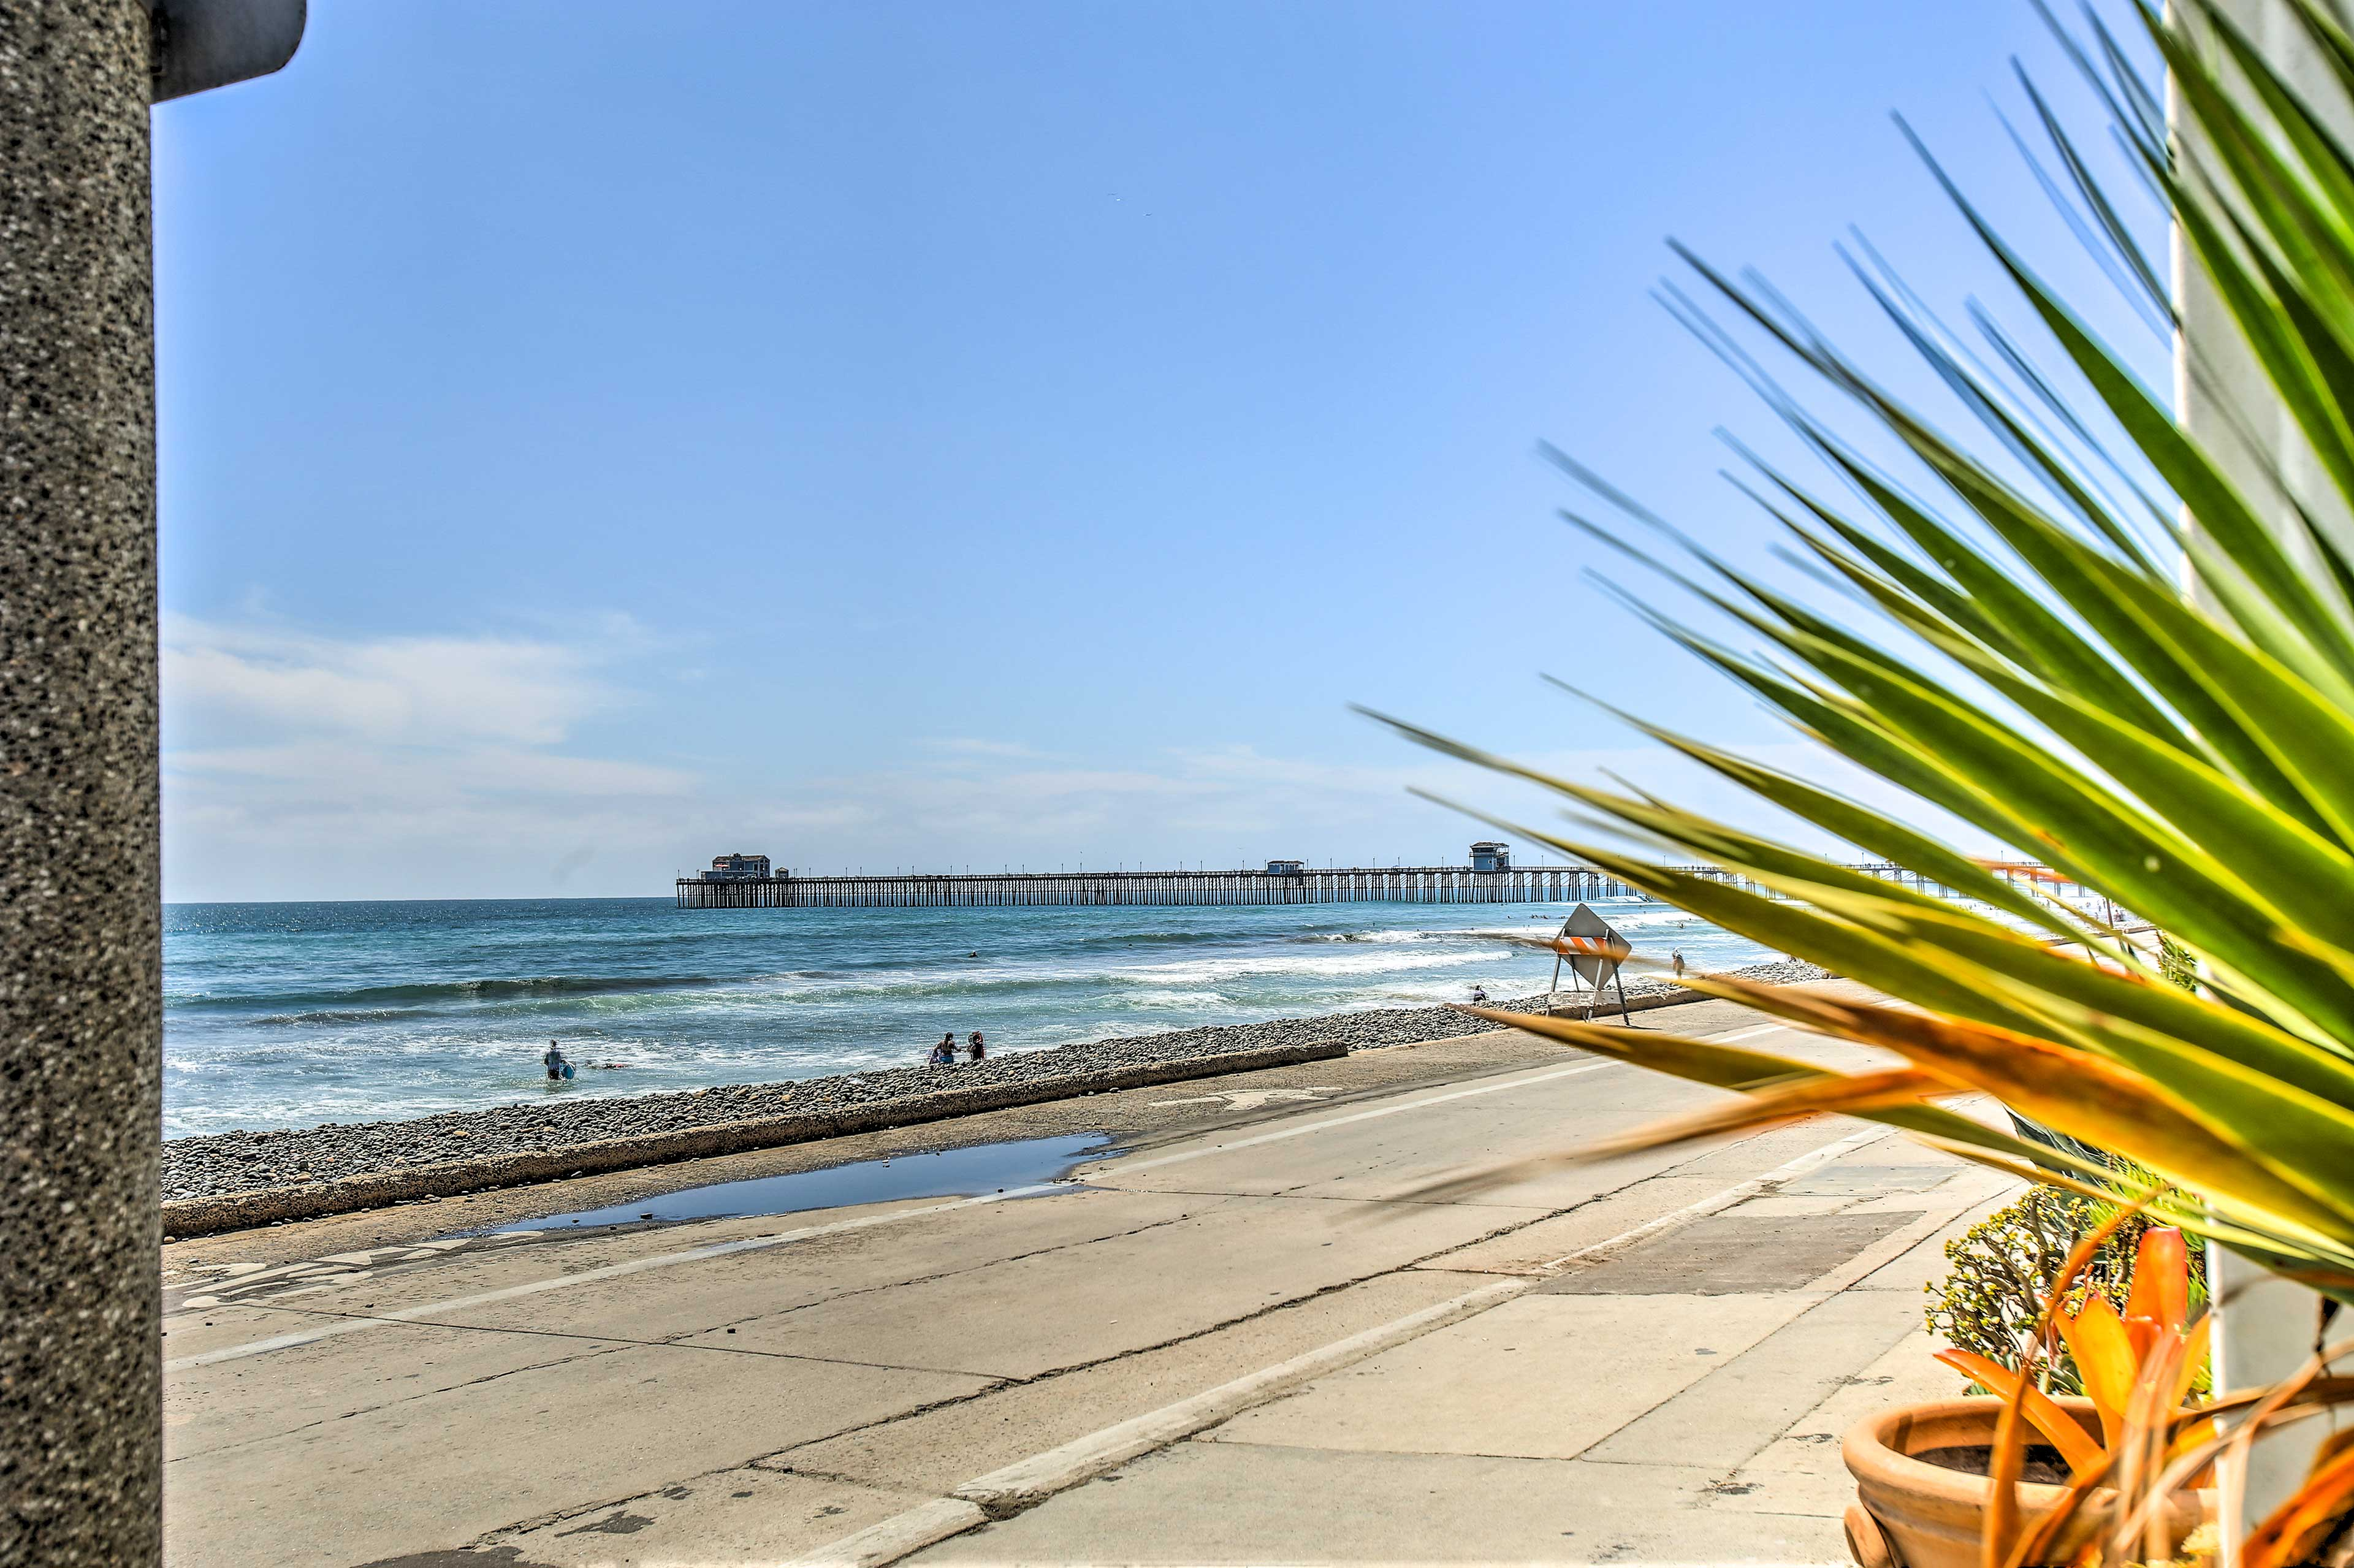 From inside you can see the Oceanside Pier!